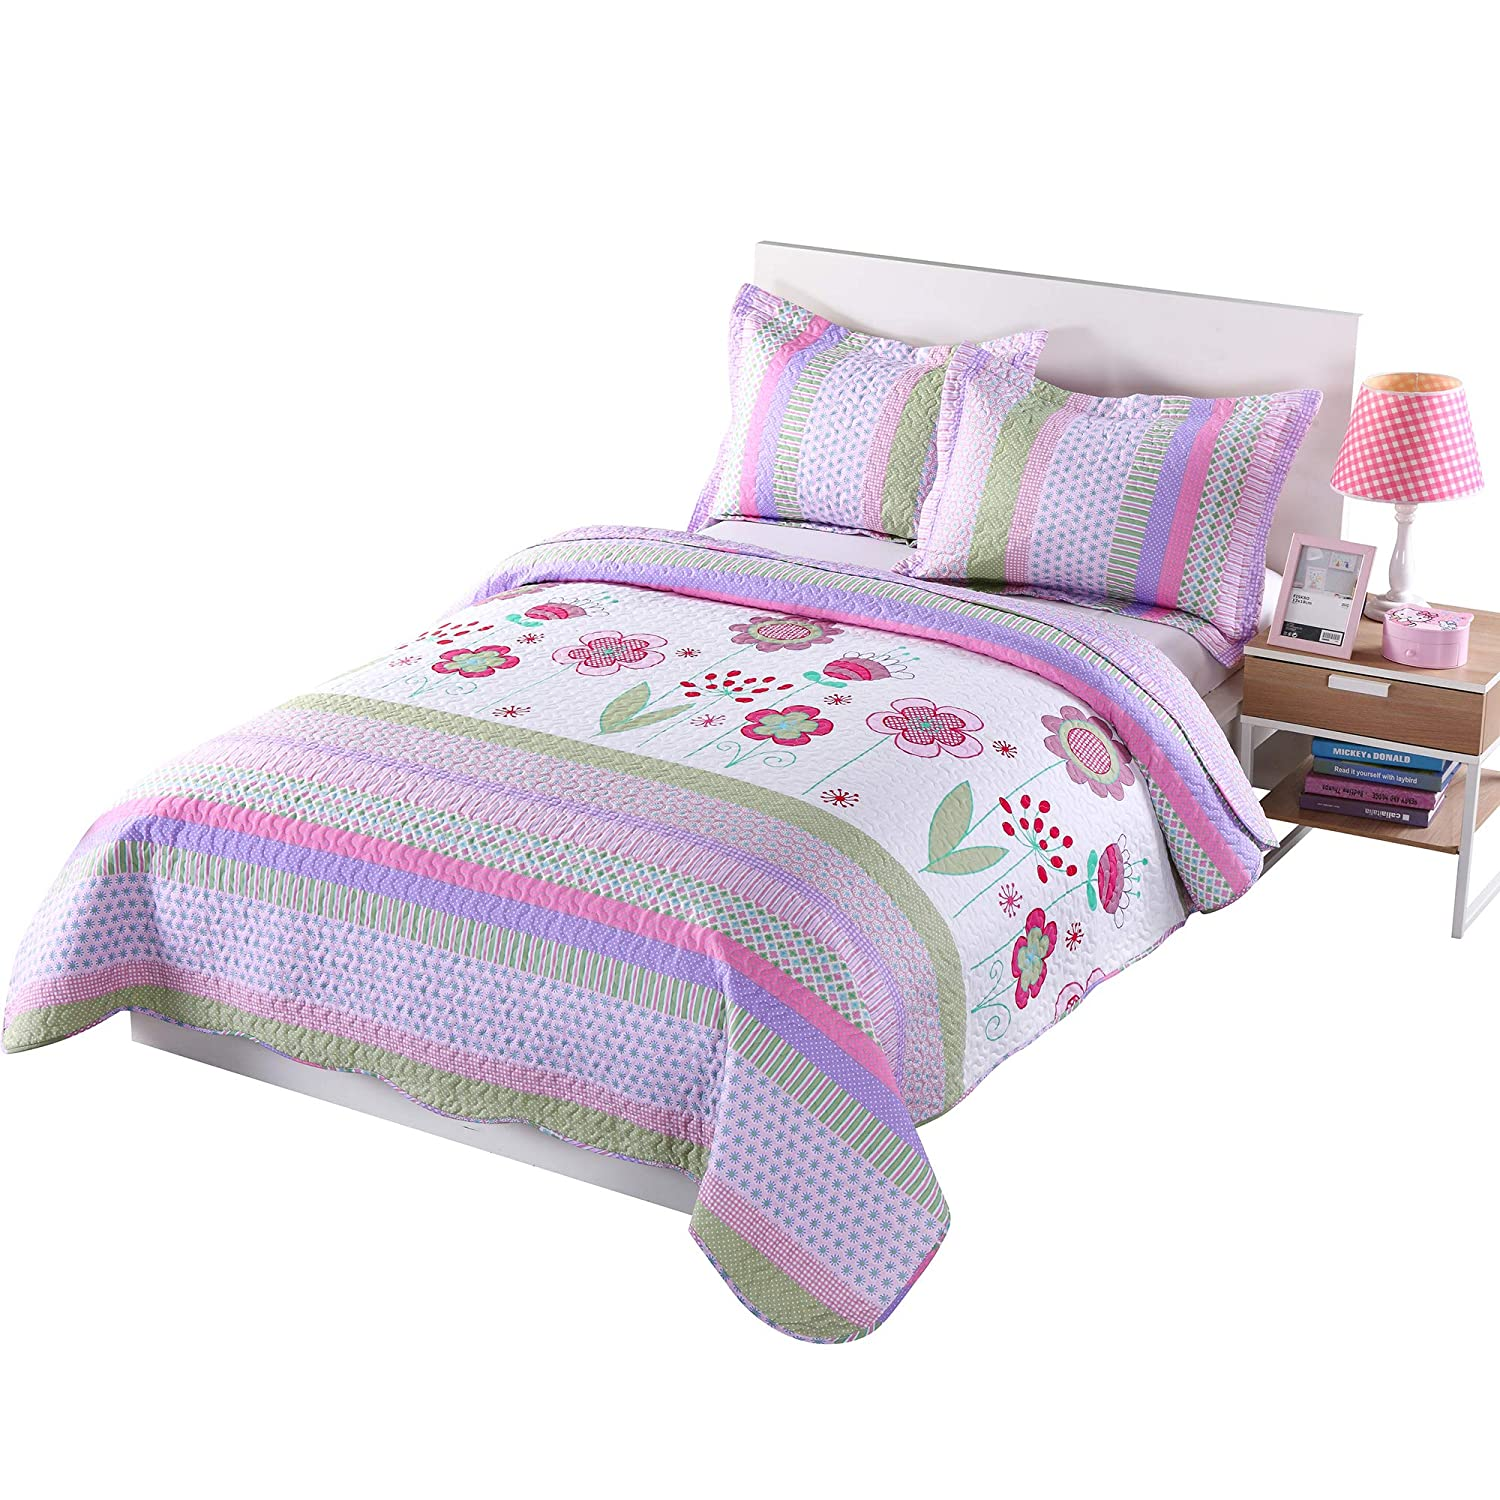 MarCielo 3 Piece Kids Bedspread Quilts Set Throw Blanket for Teens Girls Bed Printed Bedding Coverlet, Full Size, Purple Stripe (Full) ocean home fashion ca-full purple floral